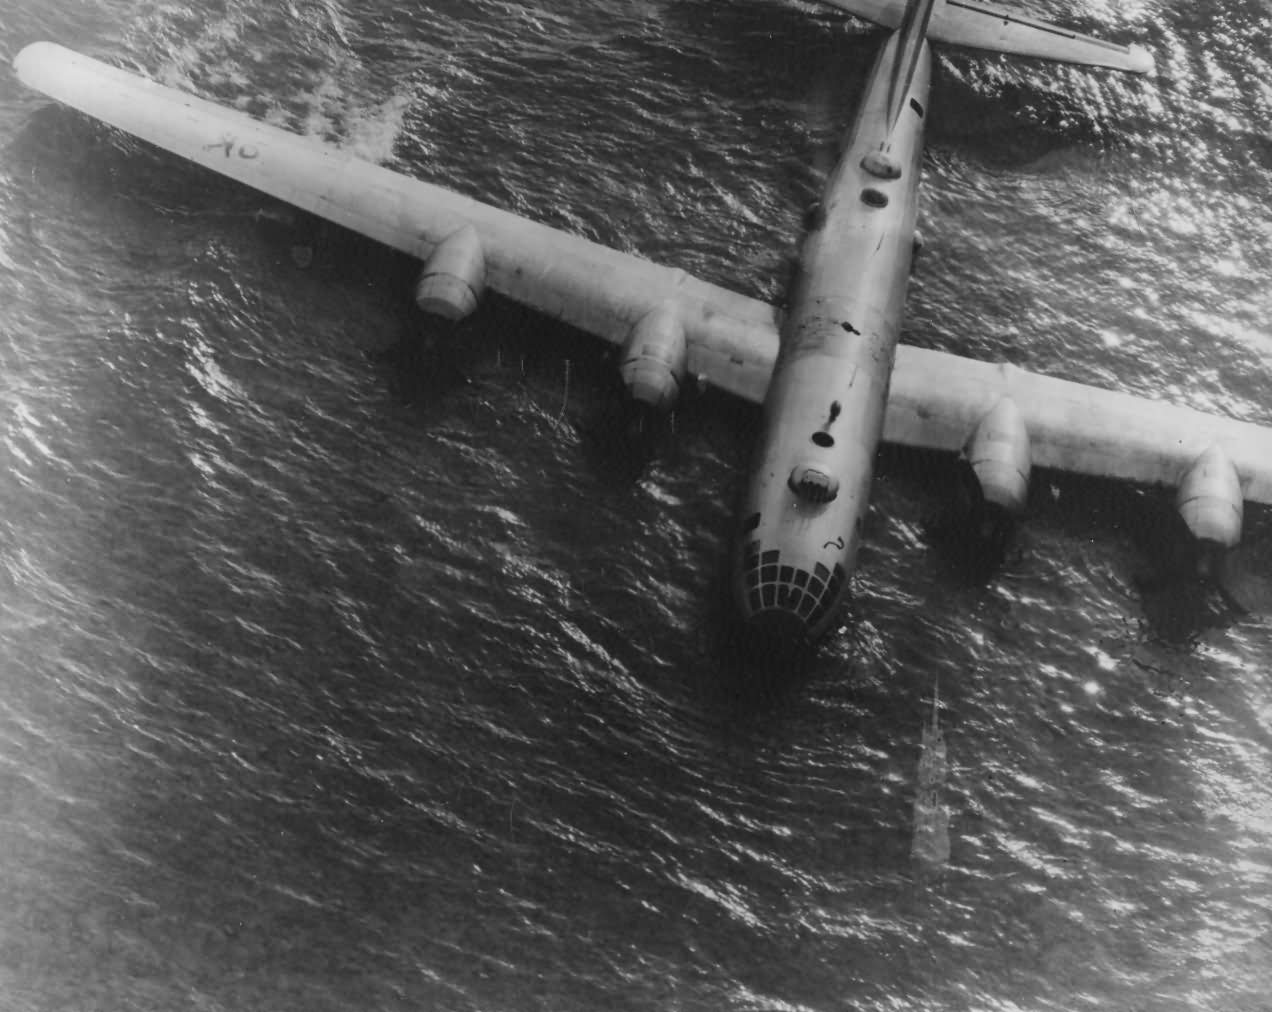 B-29 Superfortress Crashed on Beach